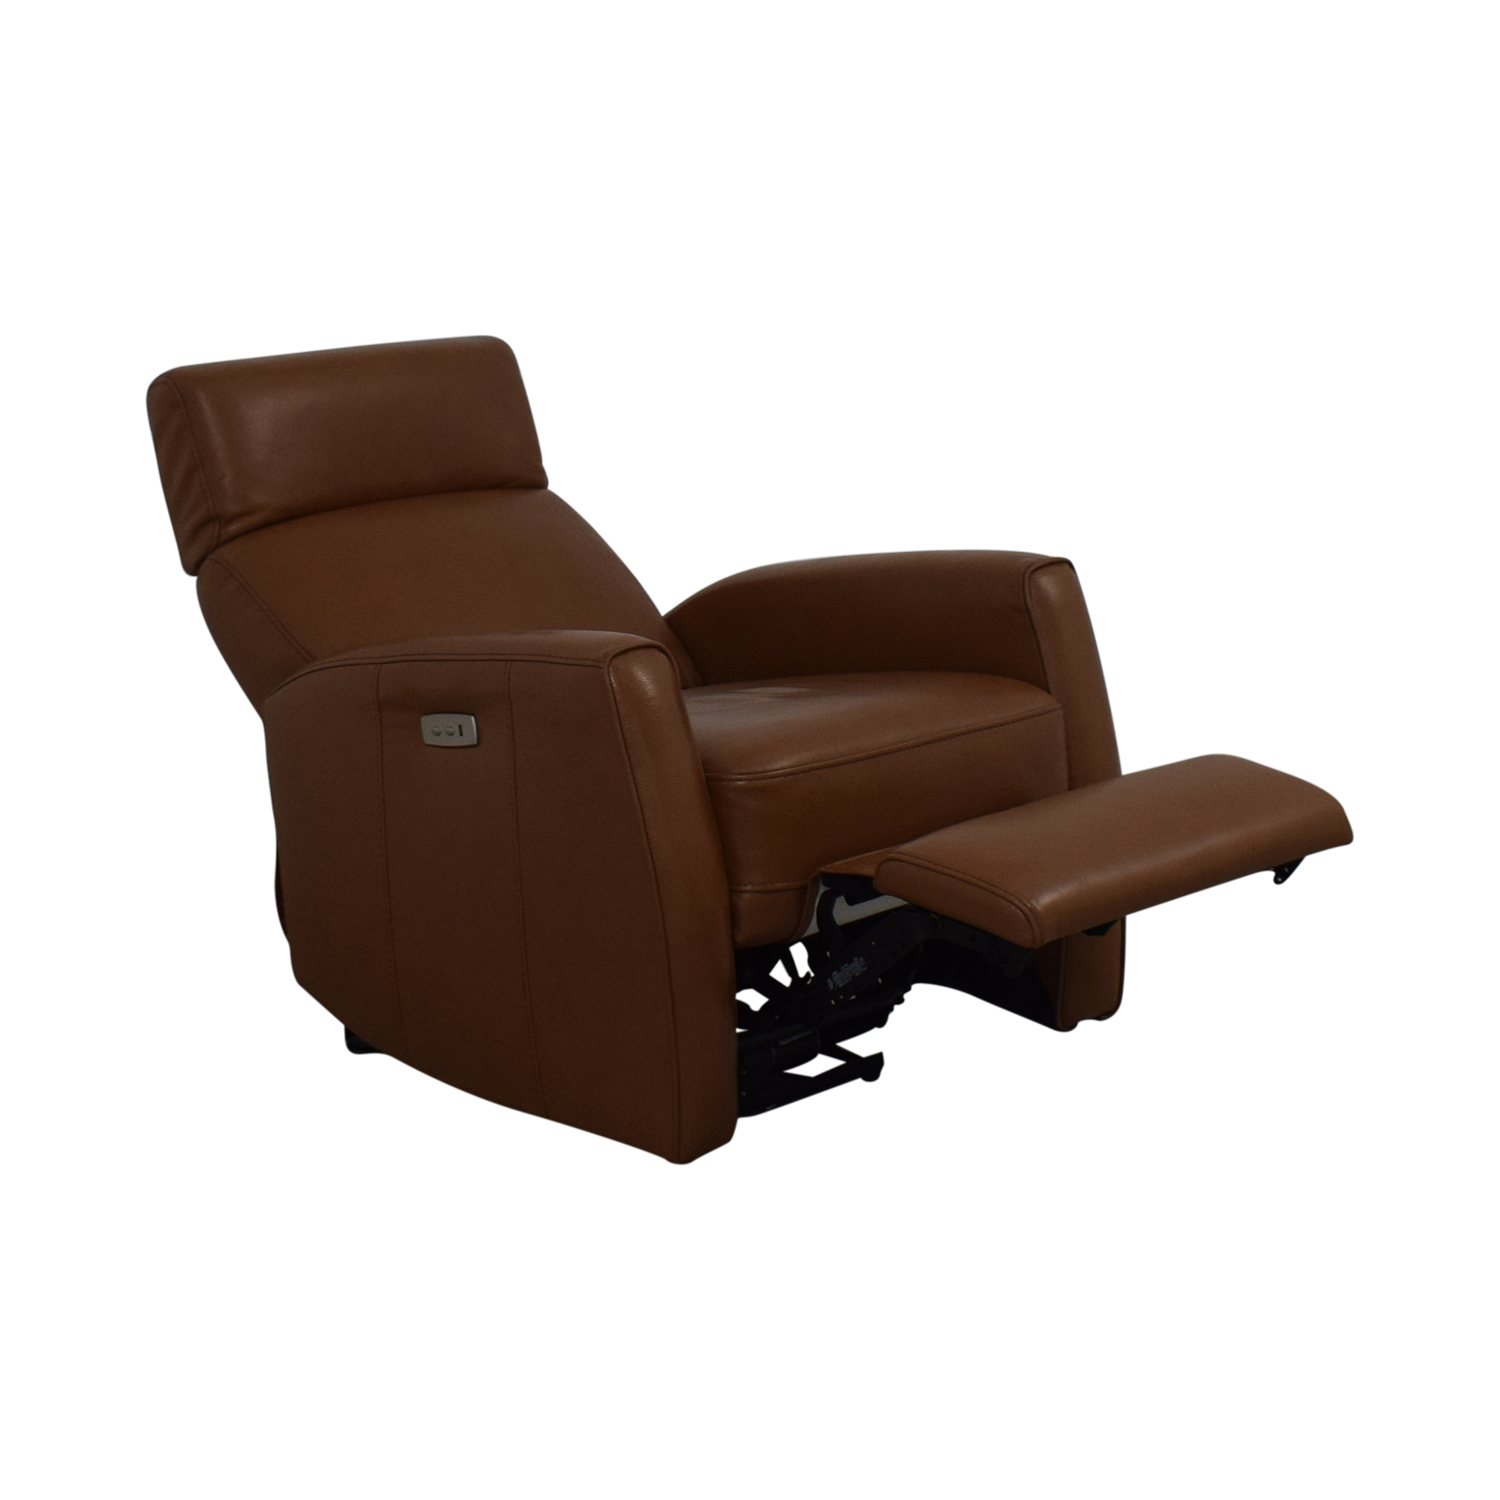 buy Macy's Power Reclining Armchair Macy's Chairs